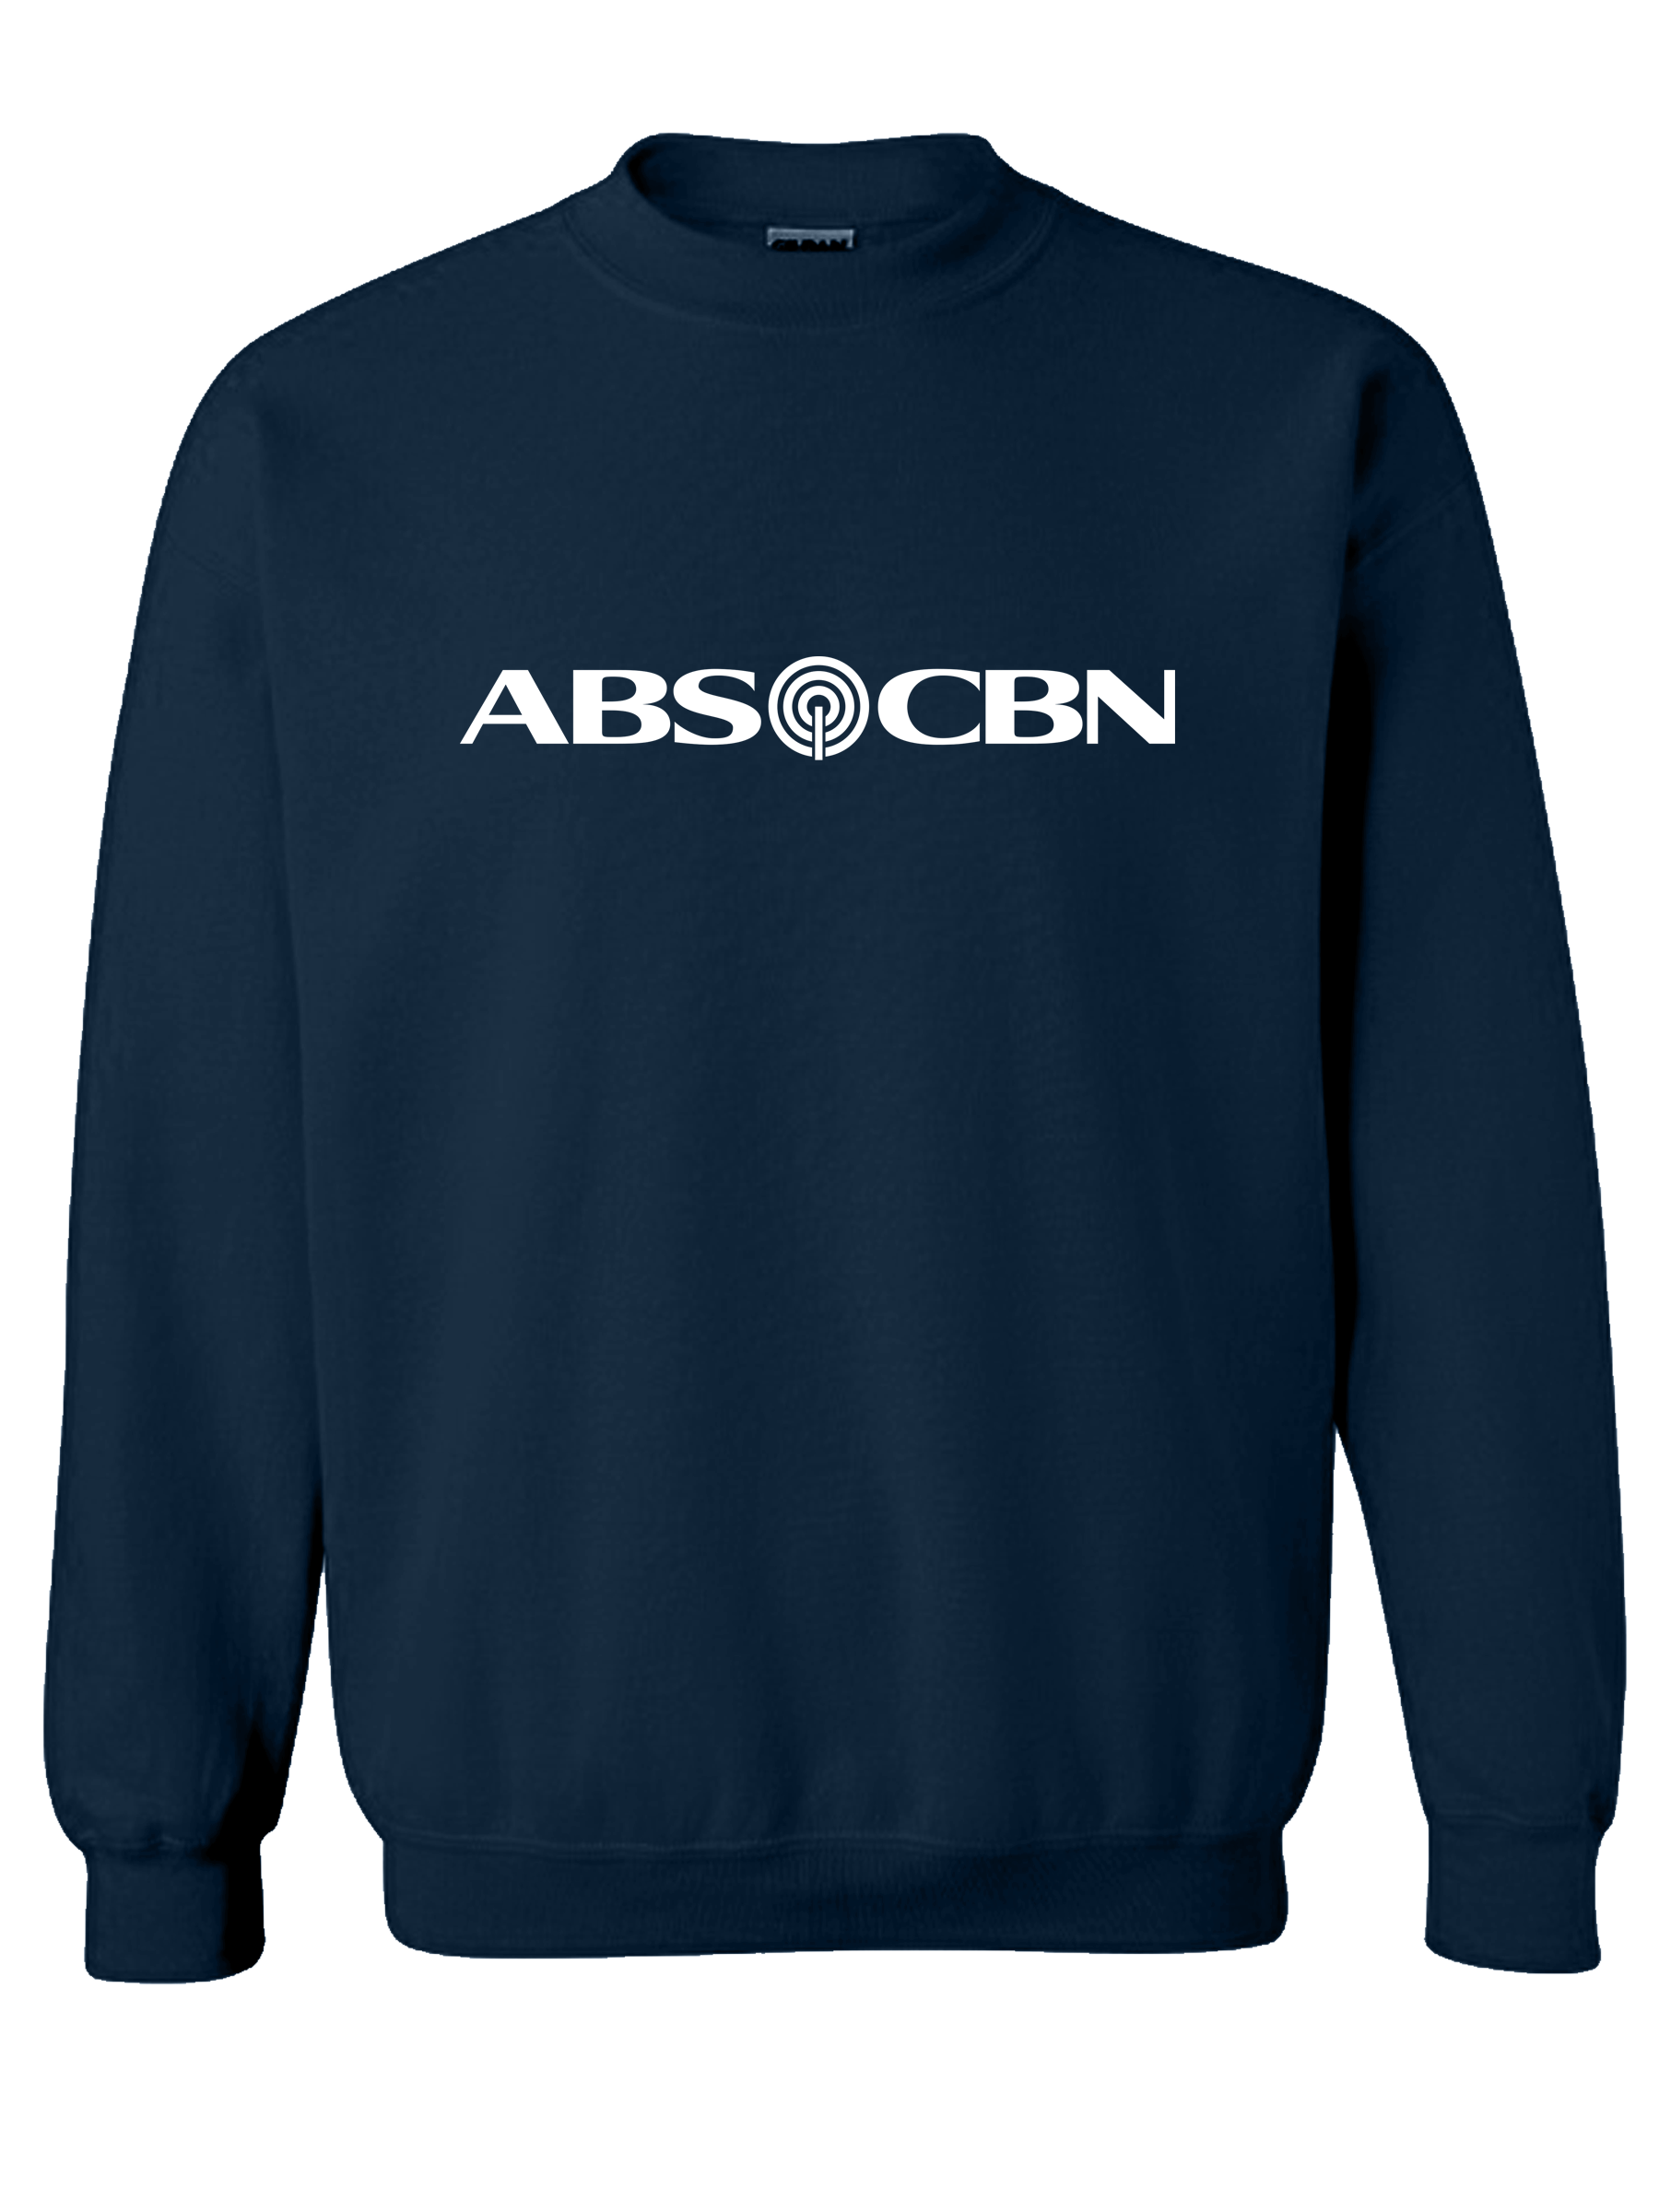 ABS-CBN Pullovers - Navy Blue